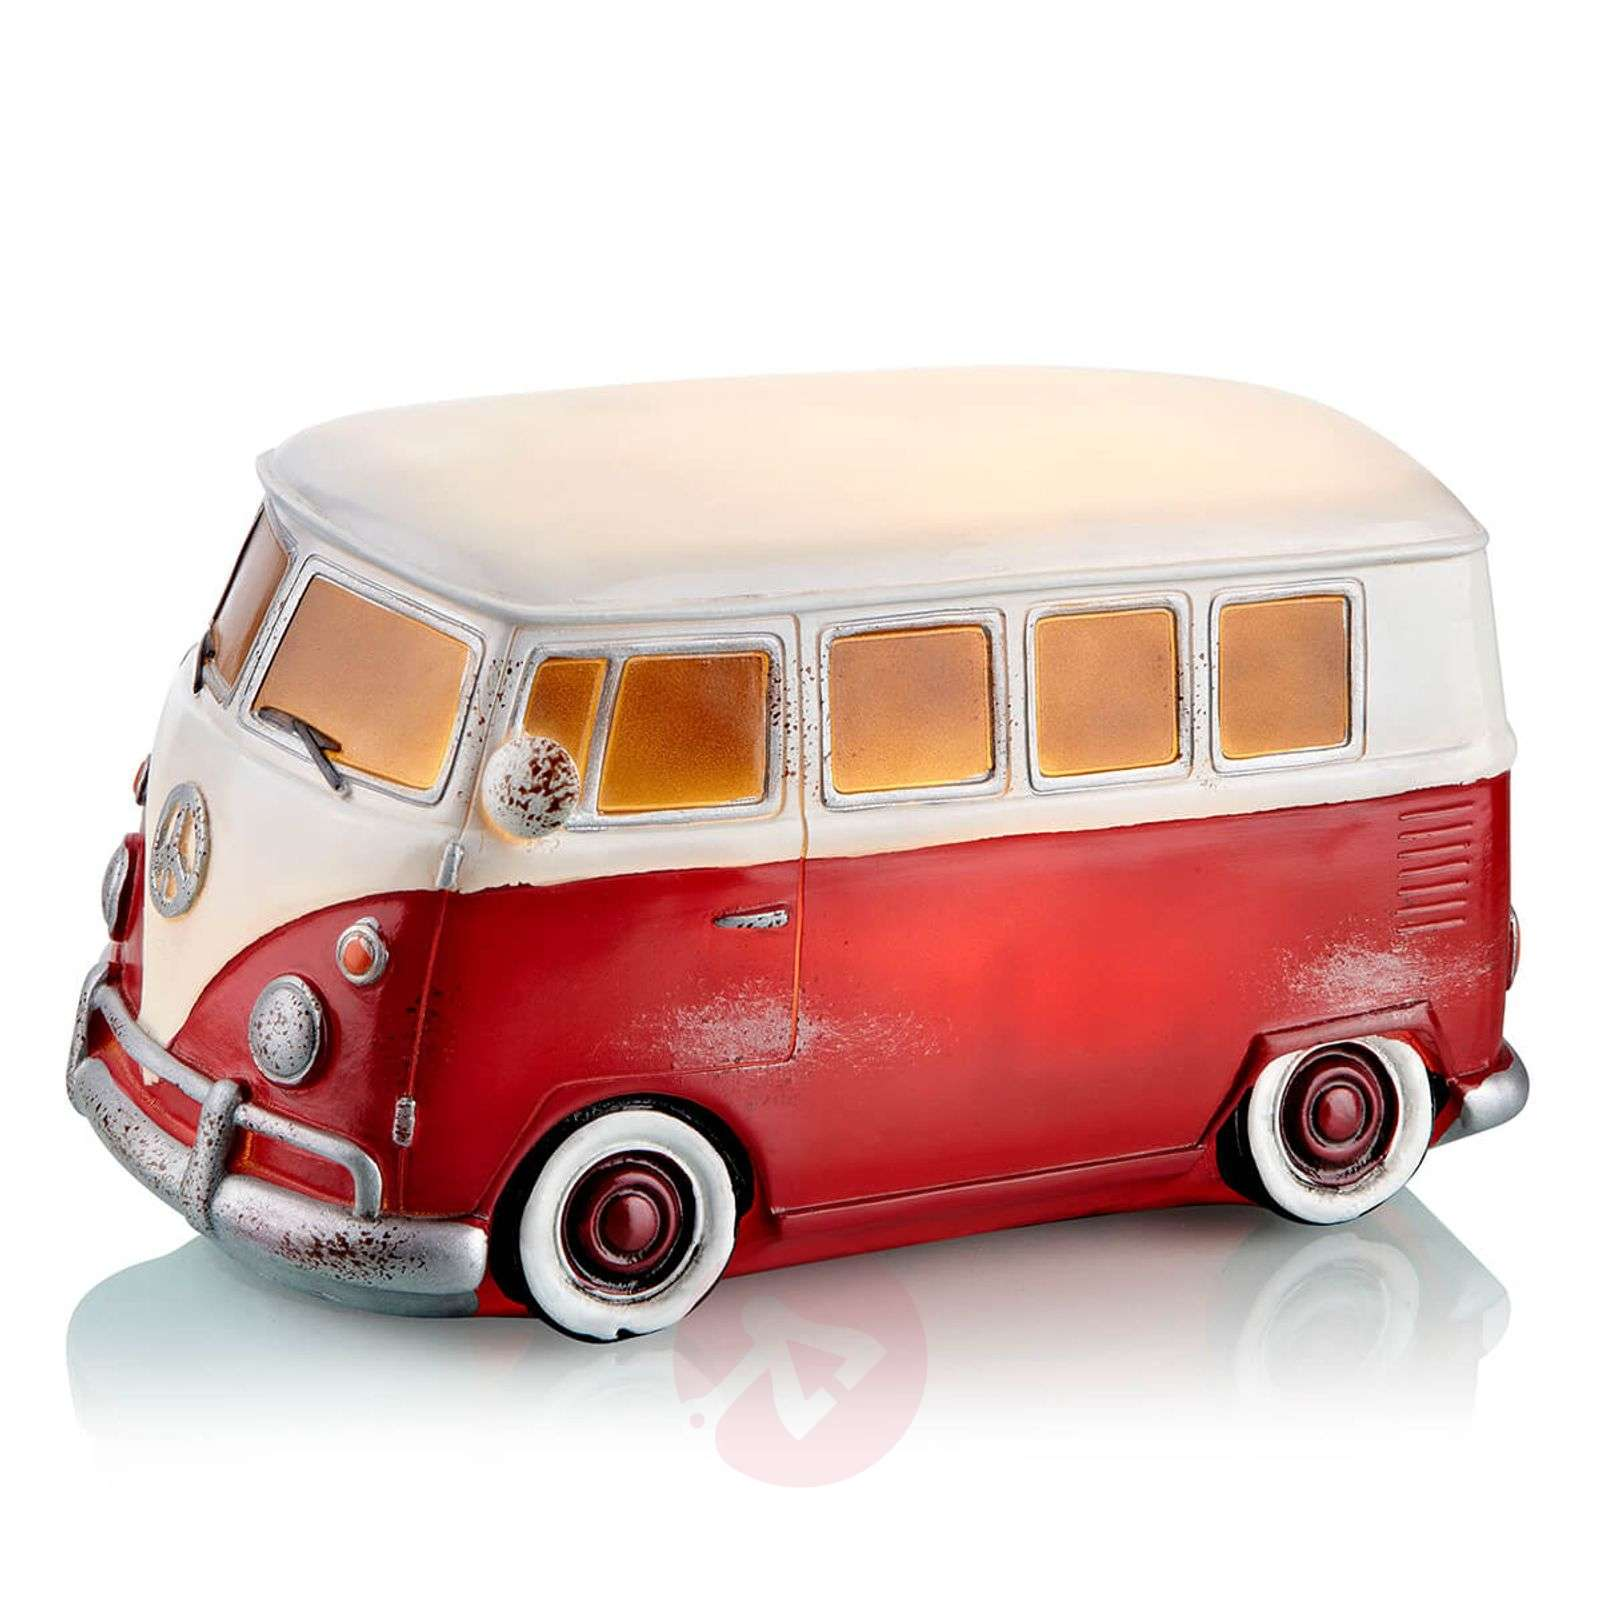 LED lamp Nostalgi in vintage VW busdesign-6506164-01